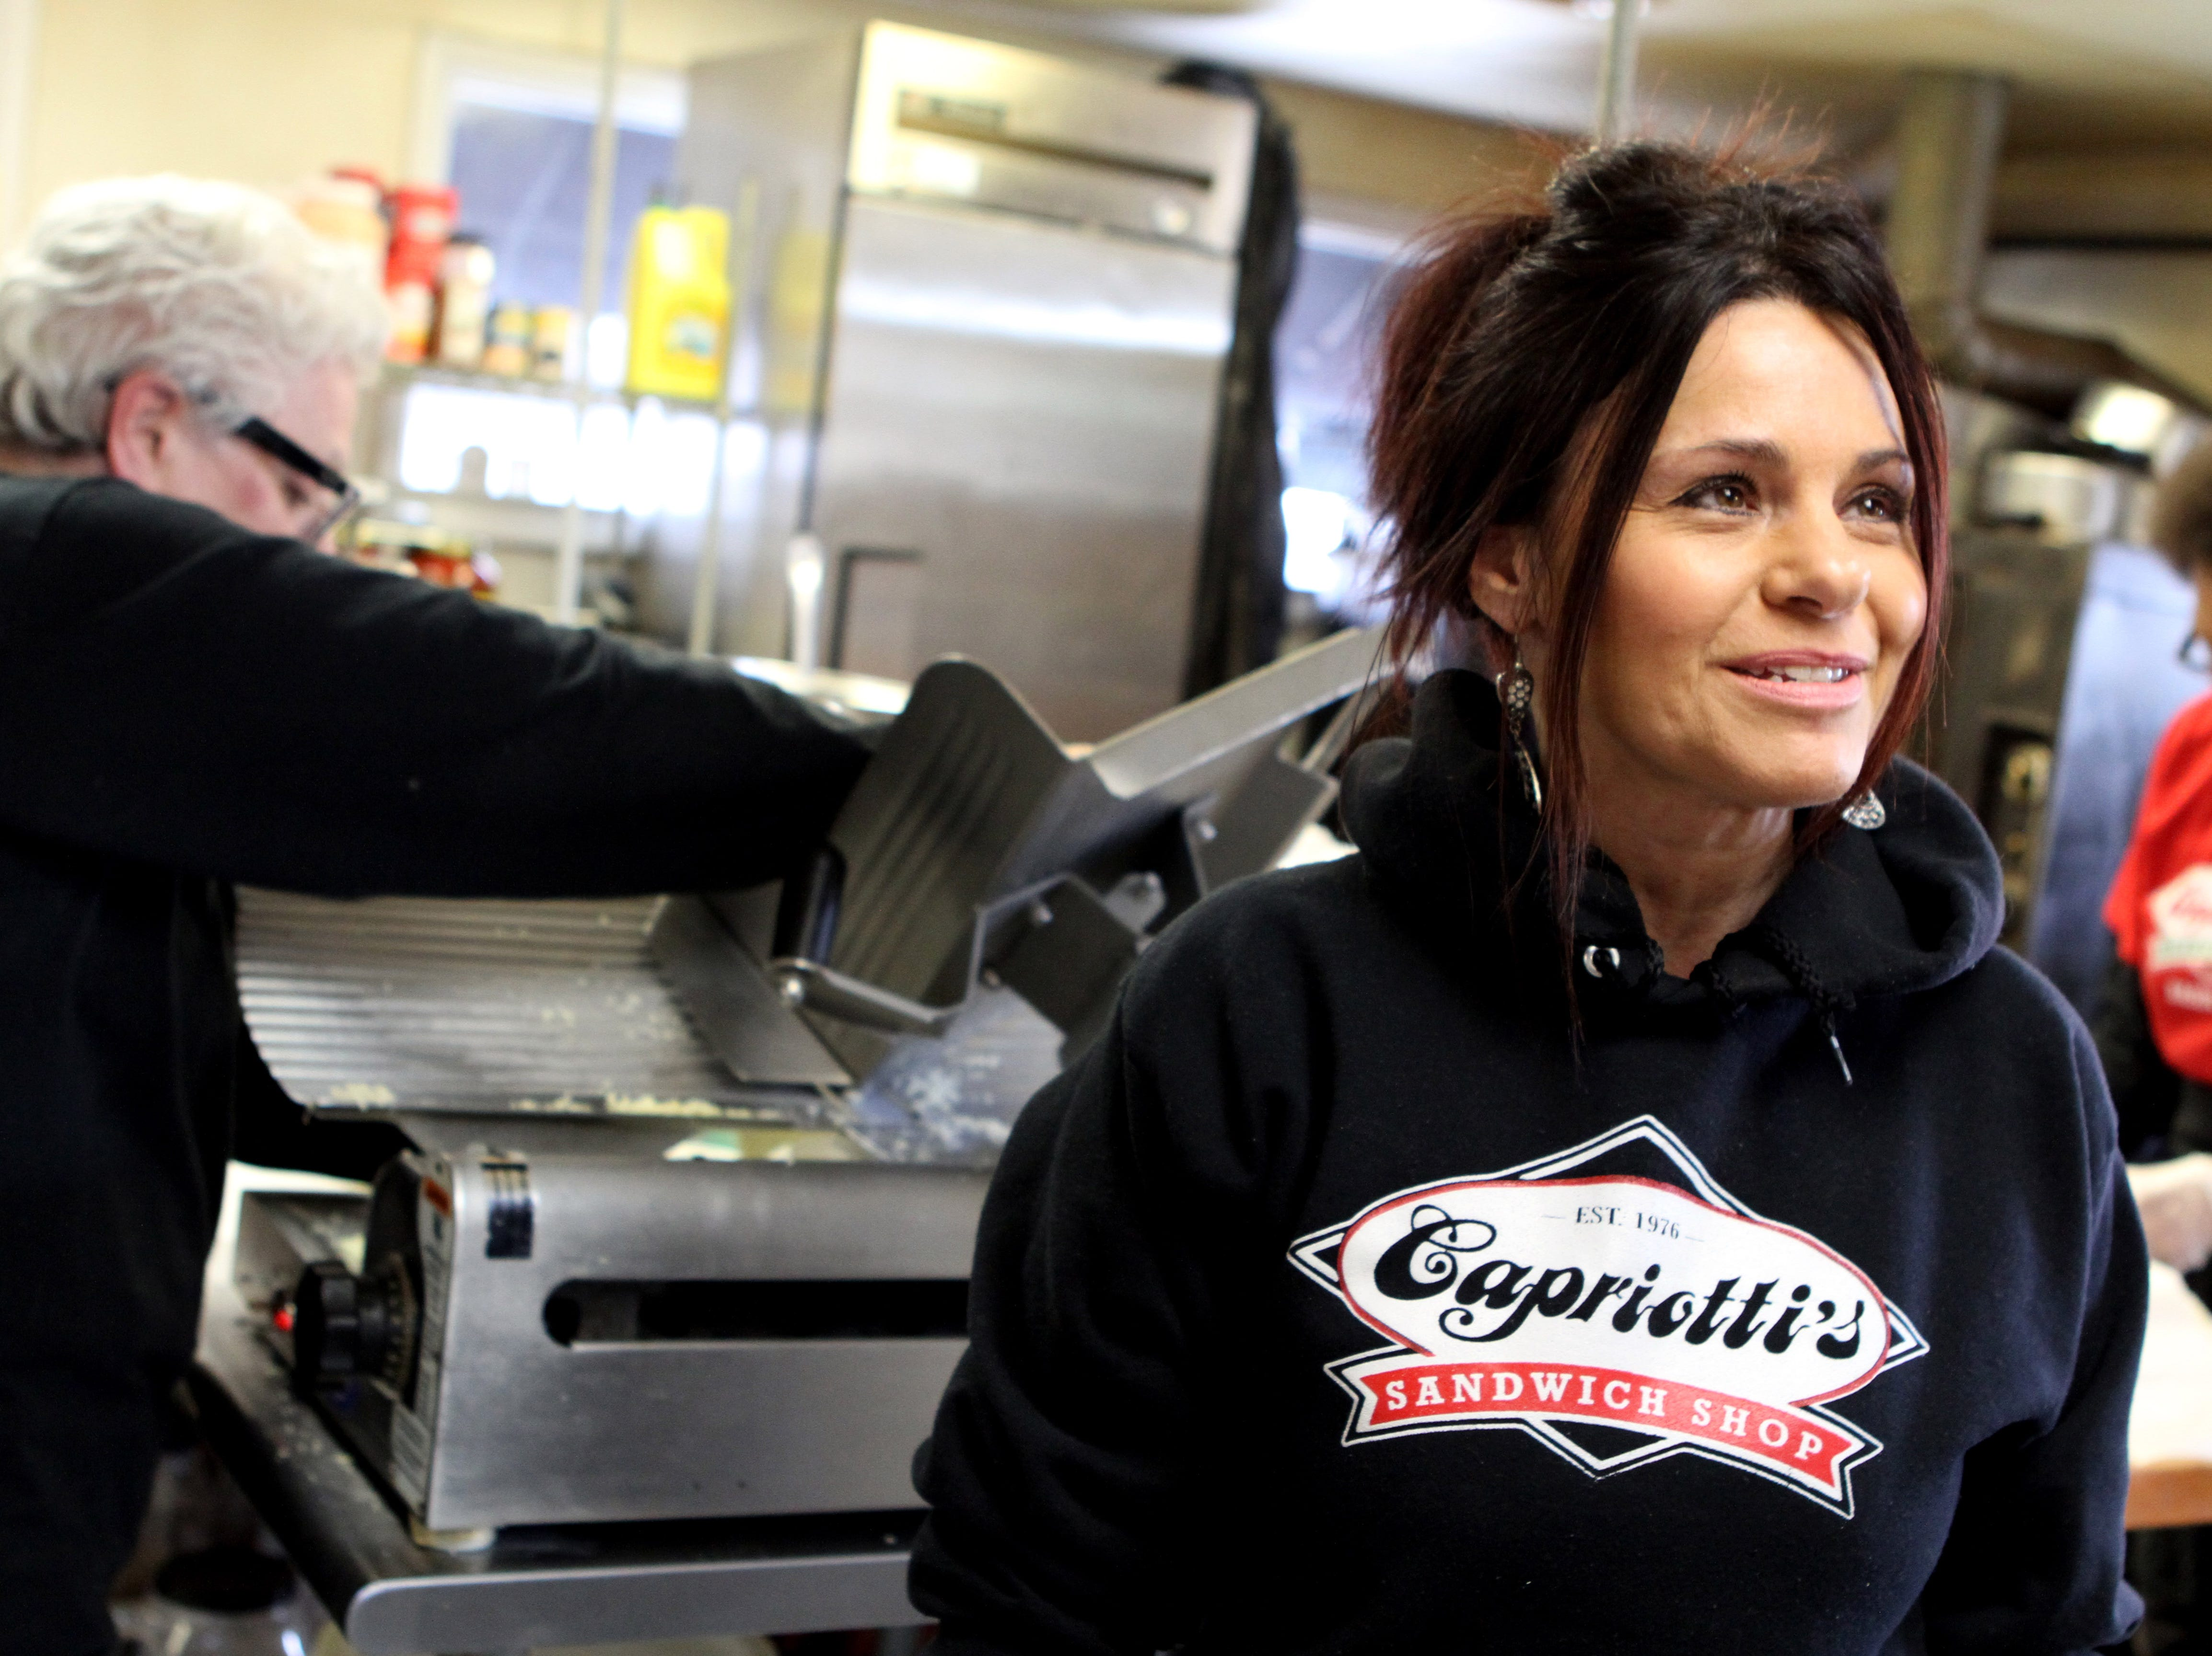 Cindy Cutler at Capriotti's in New Castle in 2014.